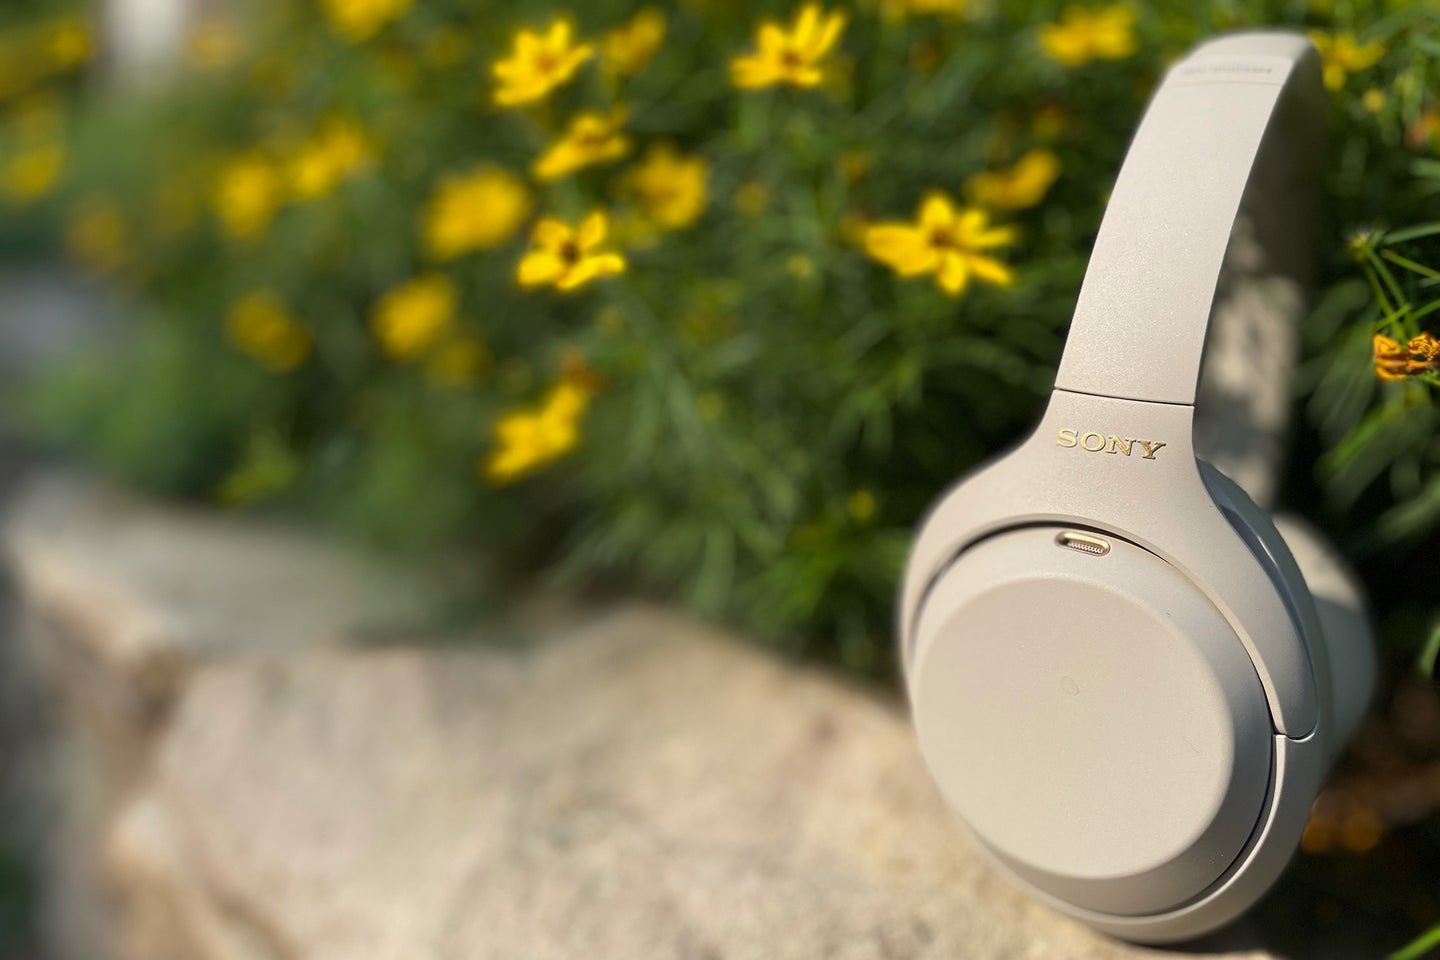 Sony WH-1000XM4 from the side with yellow flowers